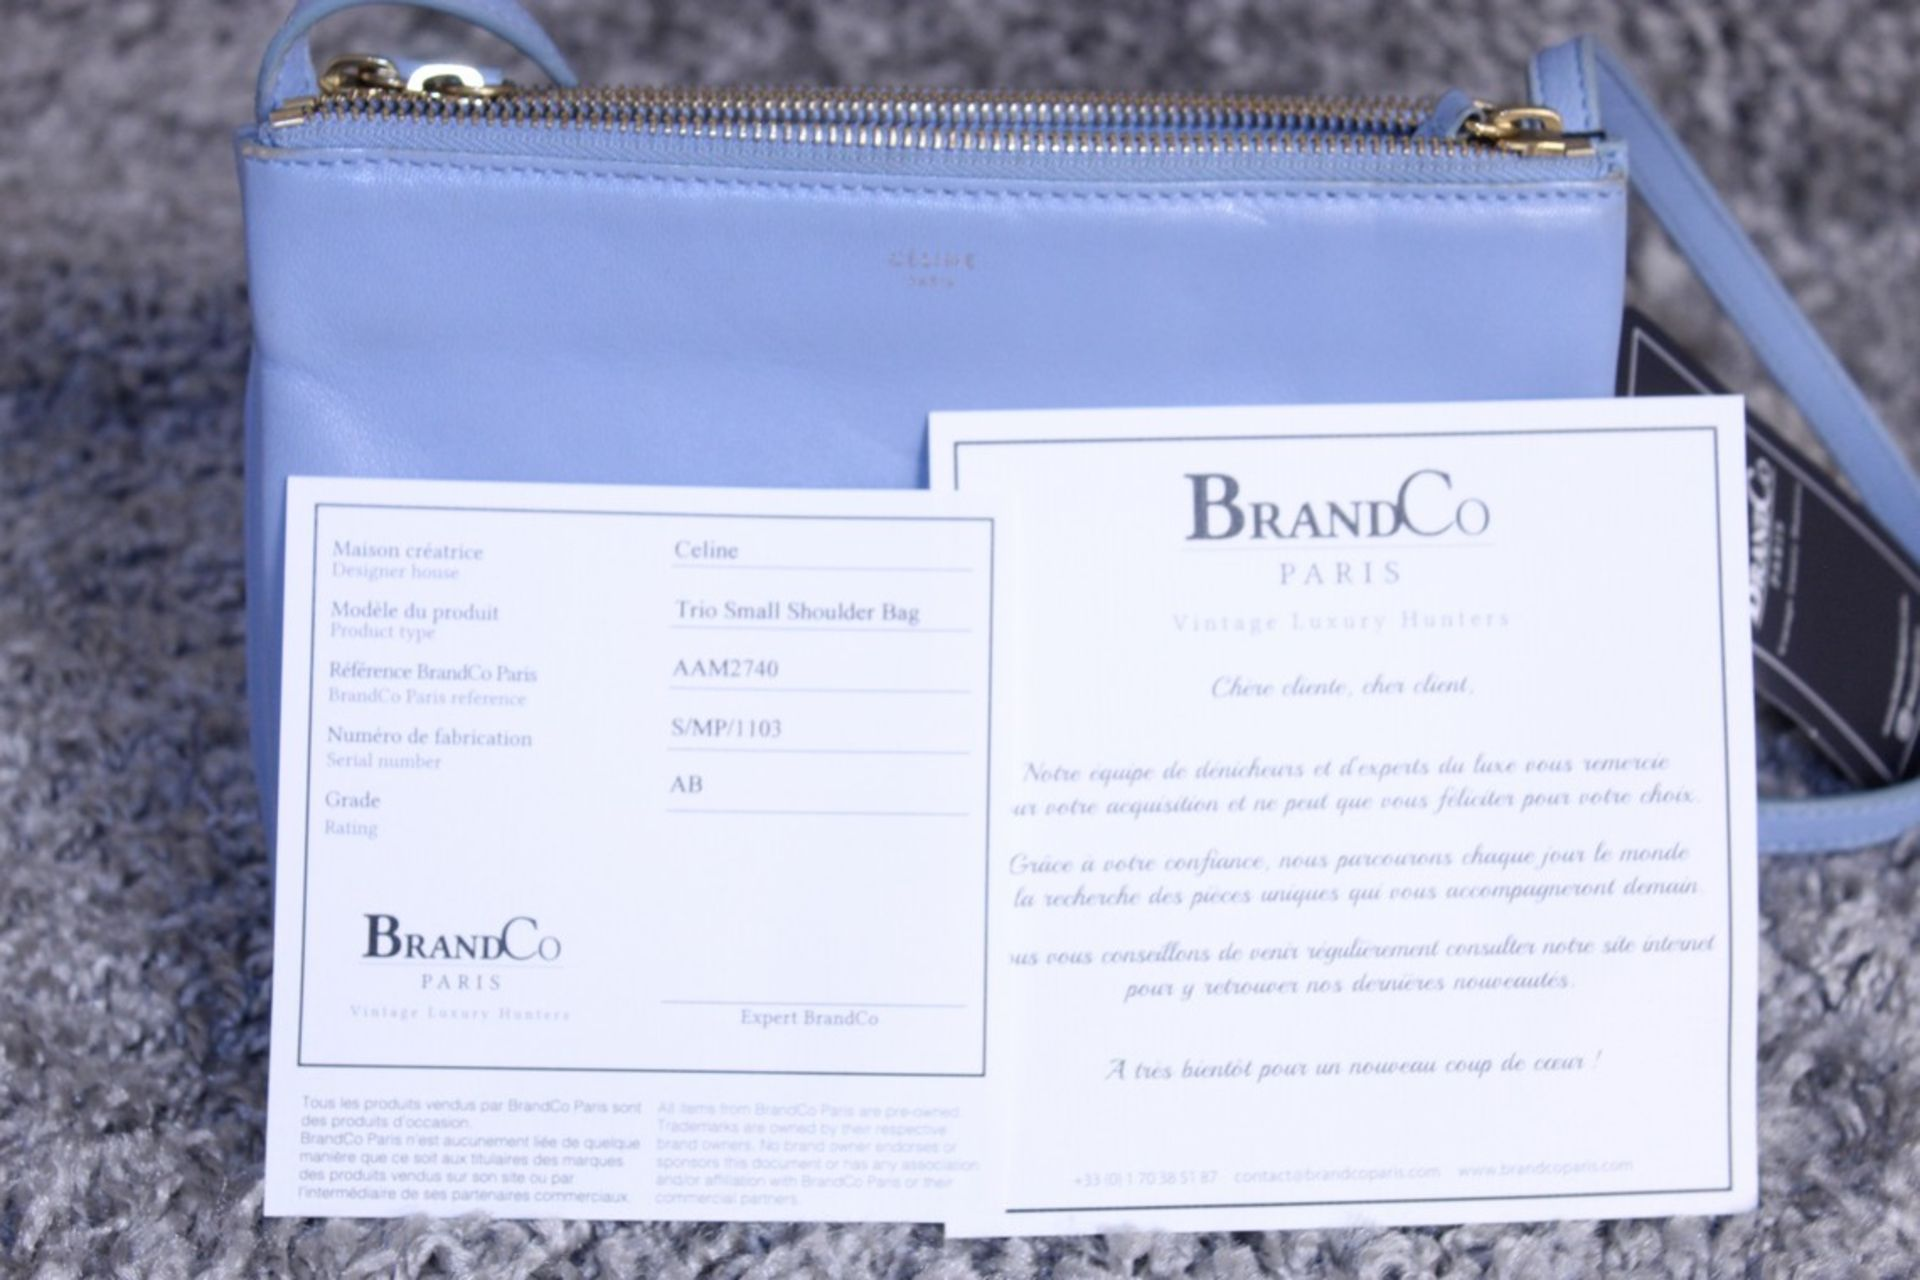 RRP £890 Celine Small Shoulder Bag, Blue Small Grained Claf Leather With Blue Leater Handles. - Image 4 of 4